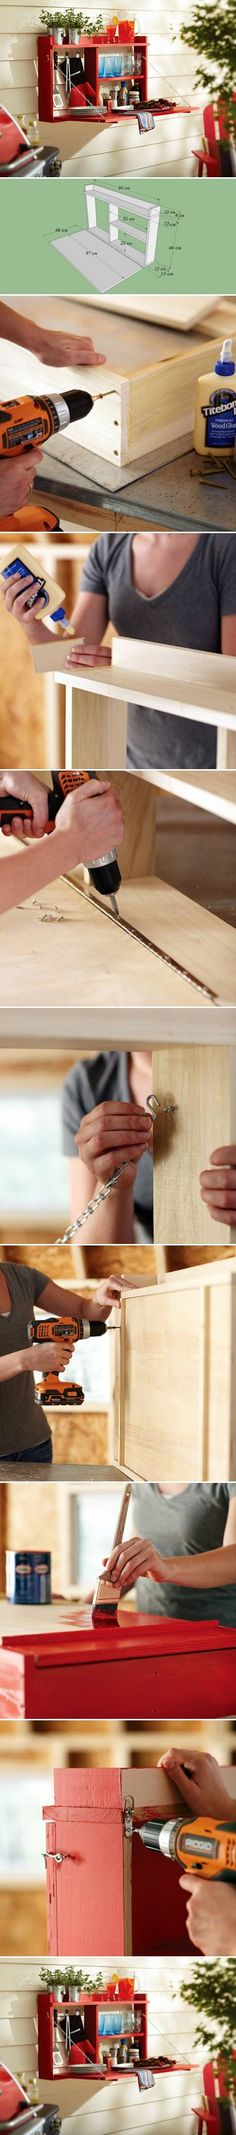 DIY Wall Mounted Folding Table... Gosh, I need my screwgun again!! I'm missing out on fun projects!!